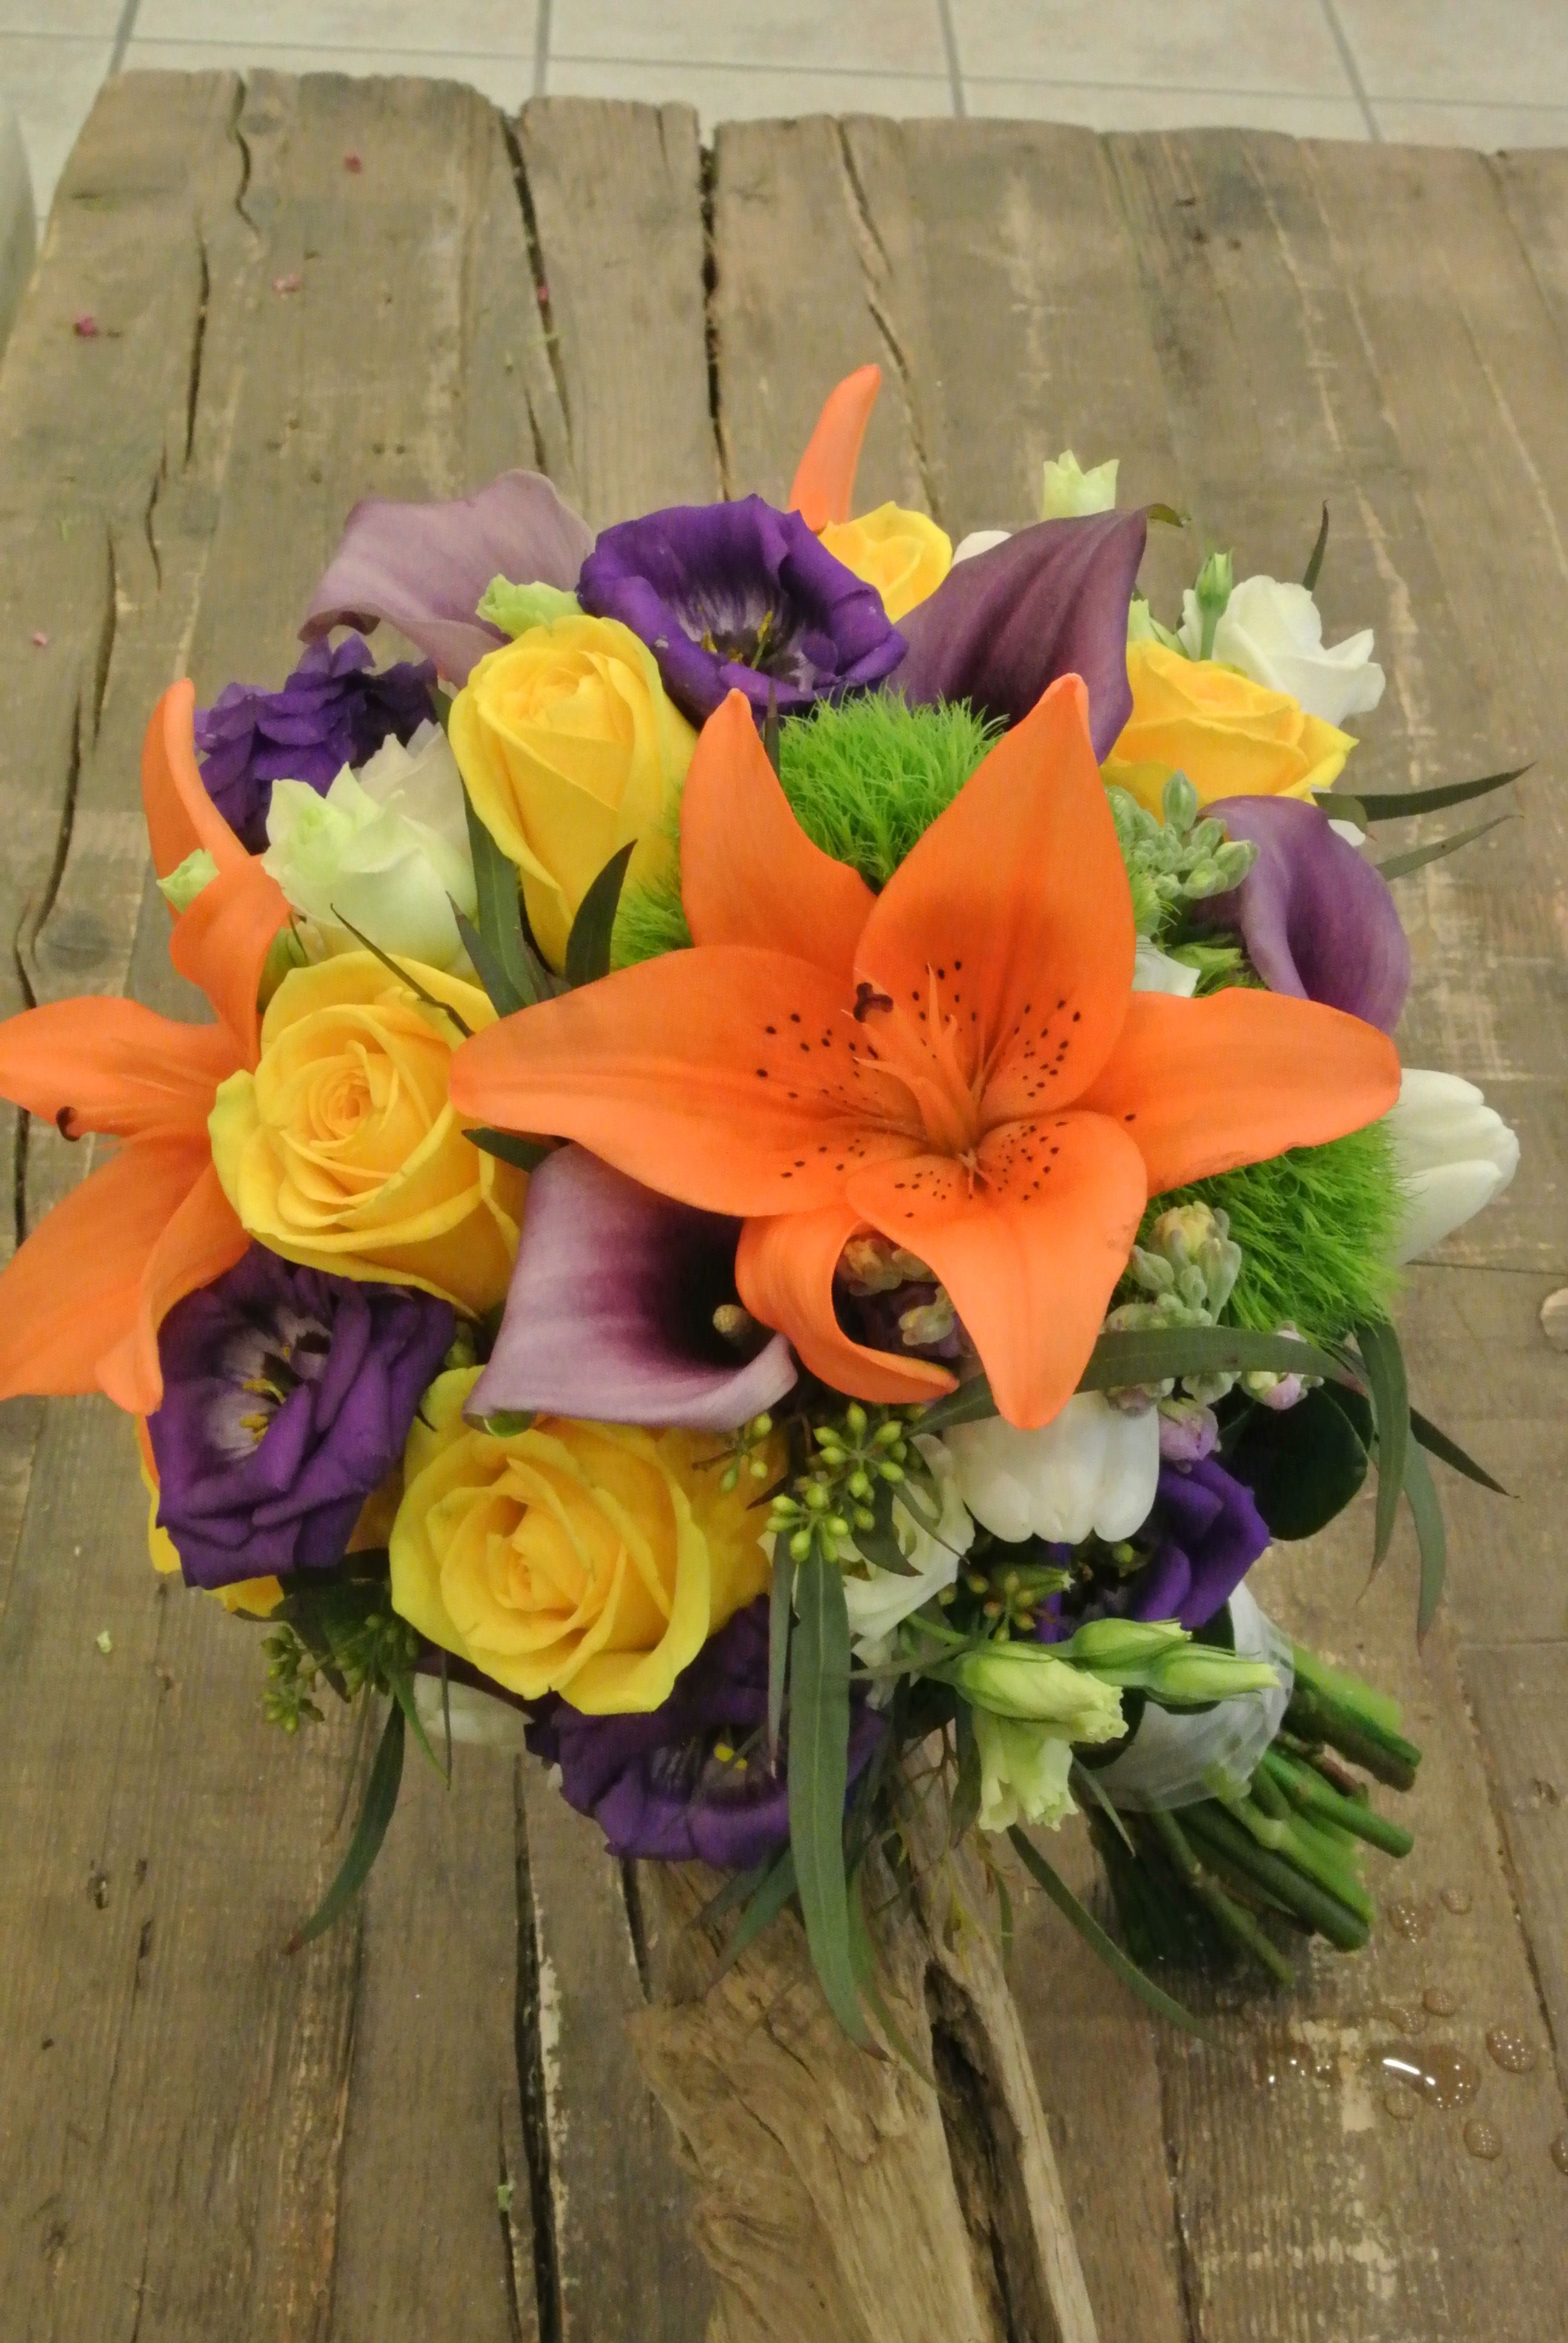 Bright bridal bouquet with orange asiatic lilies, yellow